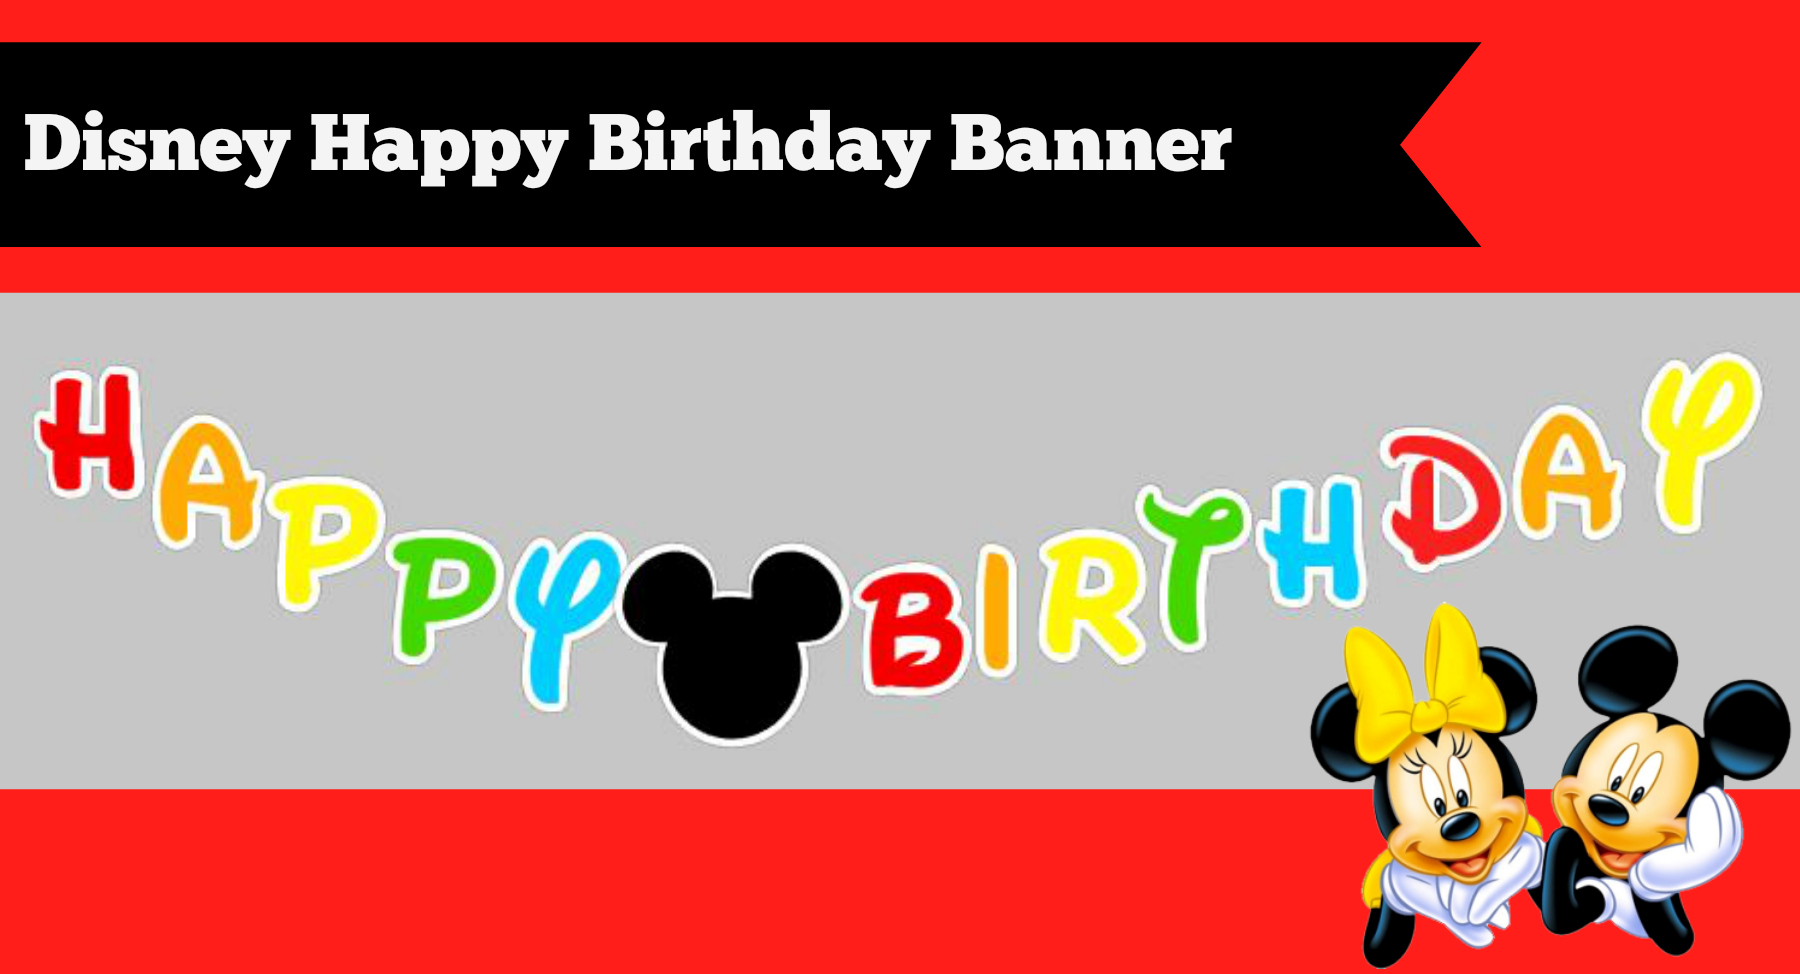 DIY Disney Mickey Mouse Happy Birthday Banner